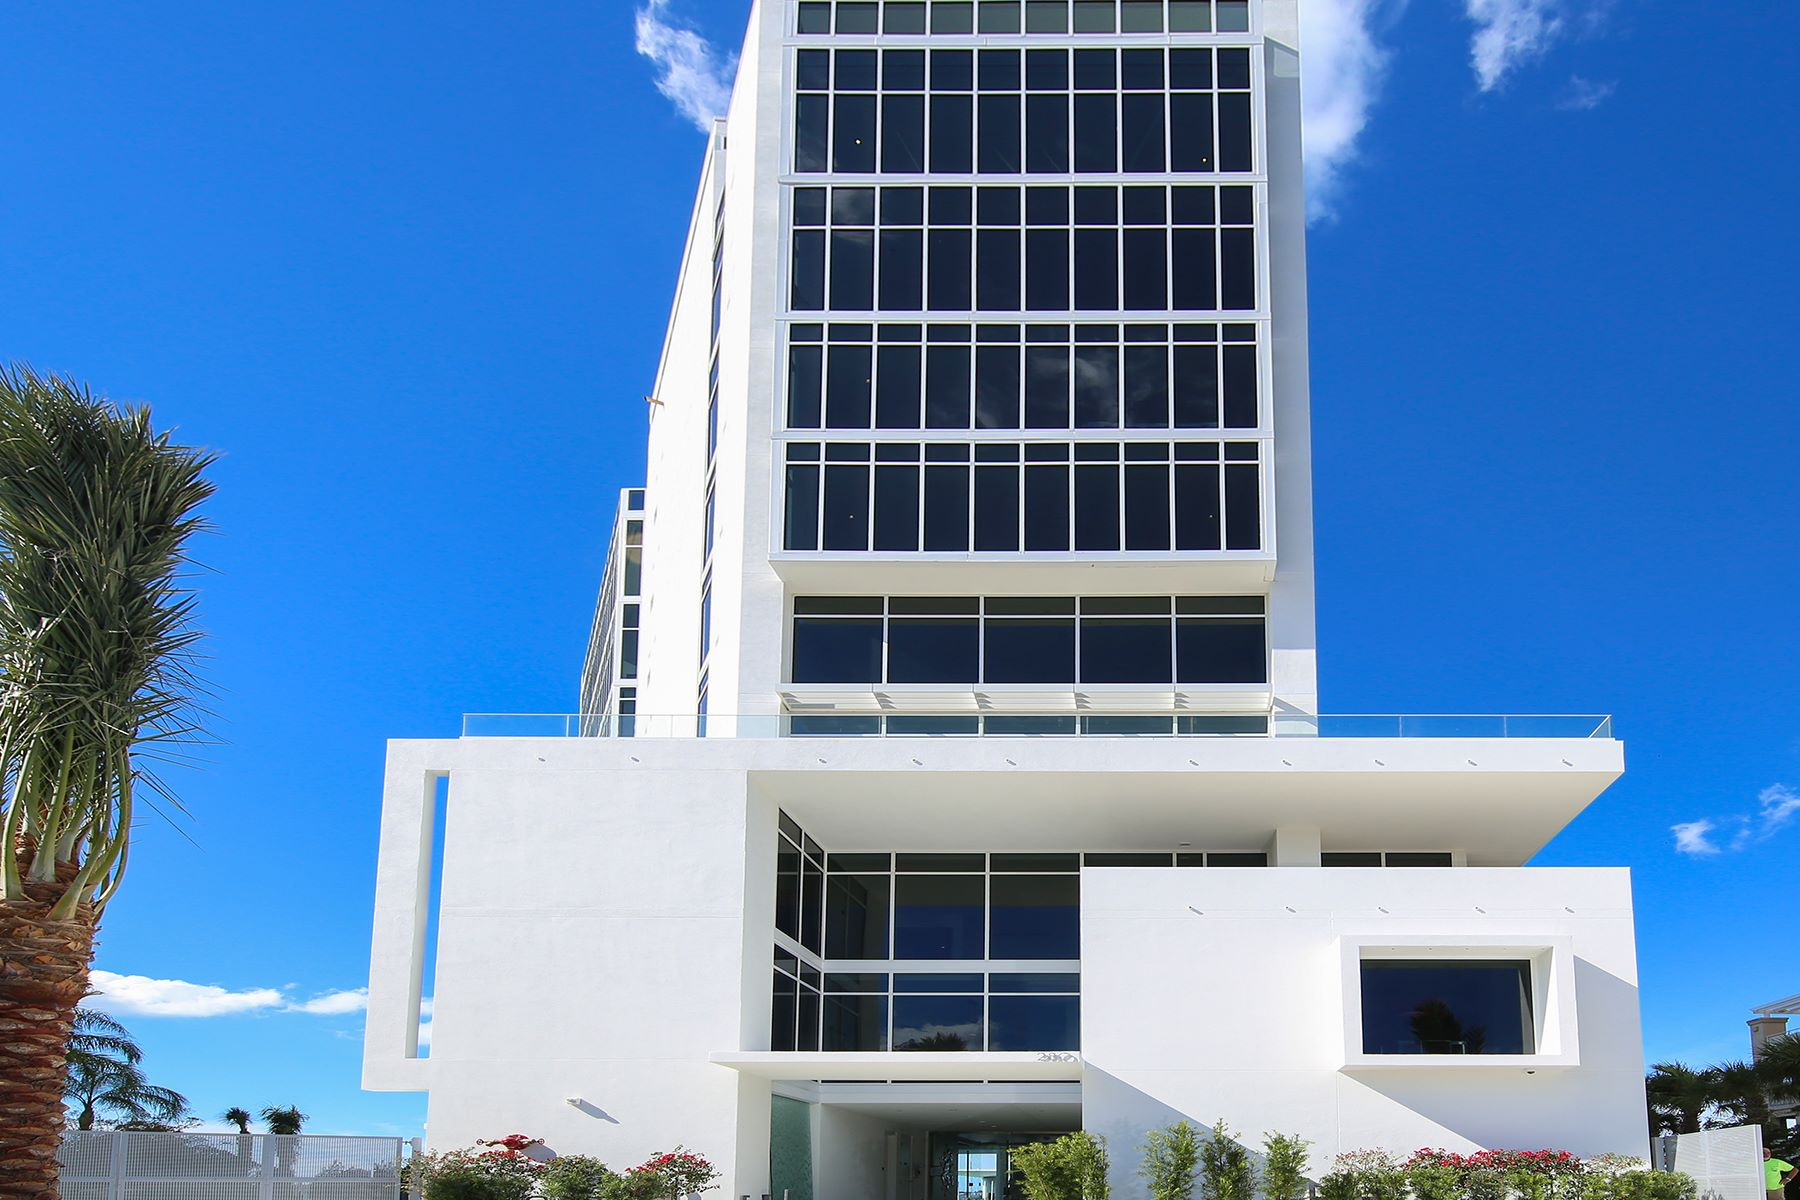 Condominium for Sale at AQUA 280 Golden Gate Pt Grand Resid Sarasota, Florida 34236 United States